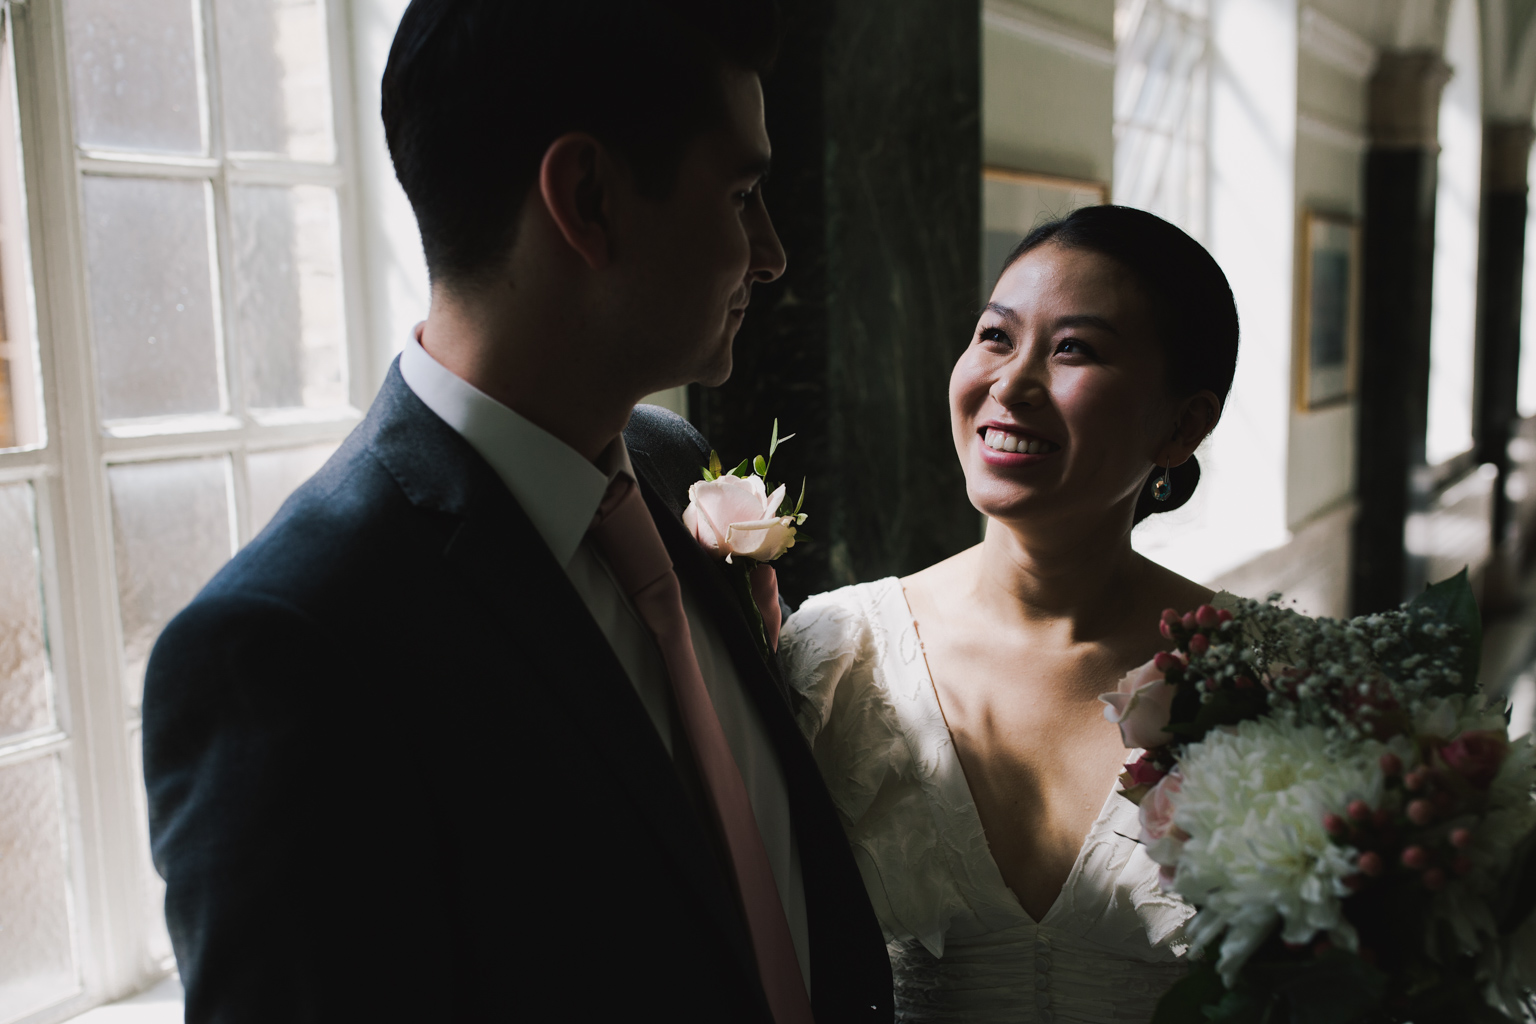 Bride and groom waiting to get married at an Islington Town Hall Elopement